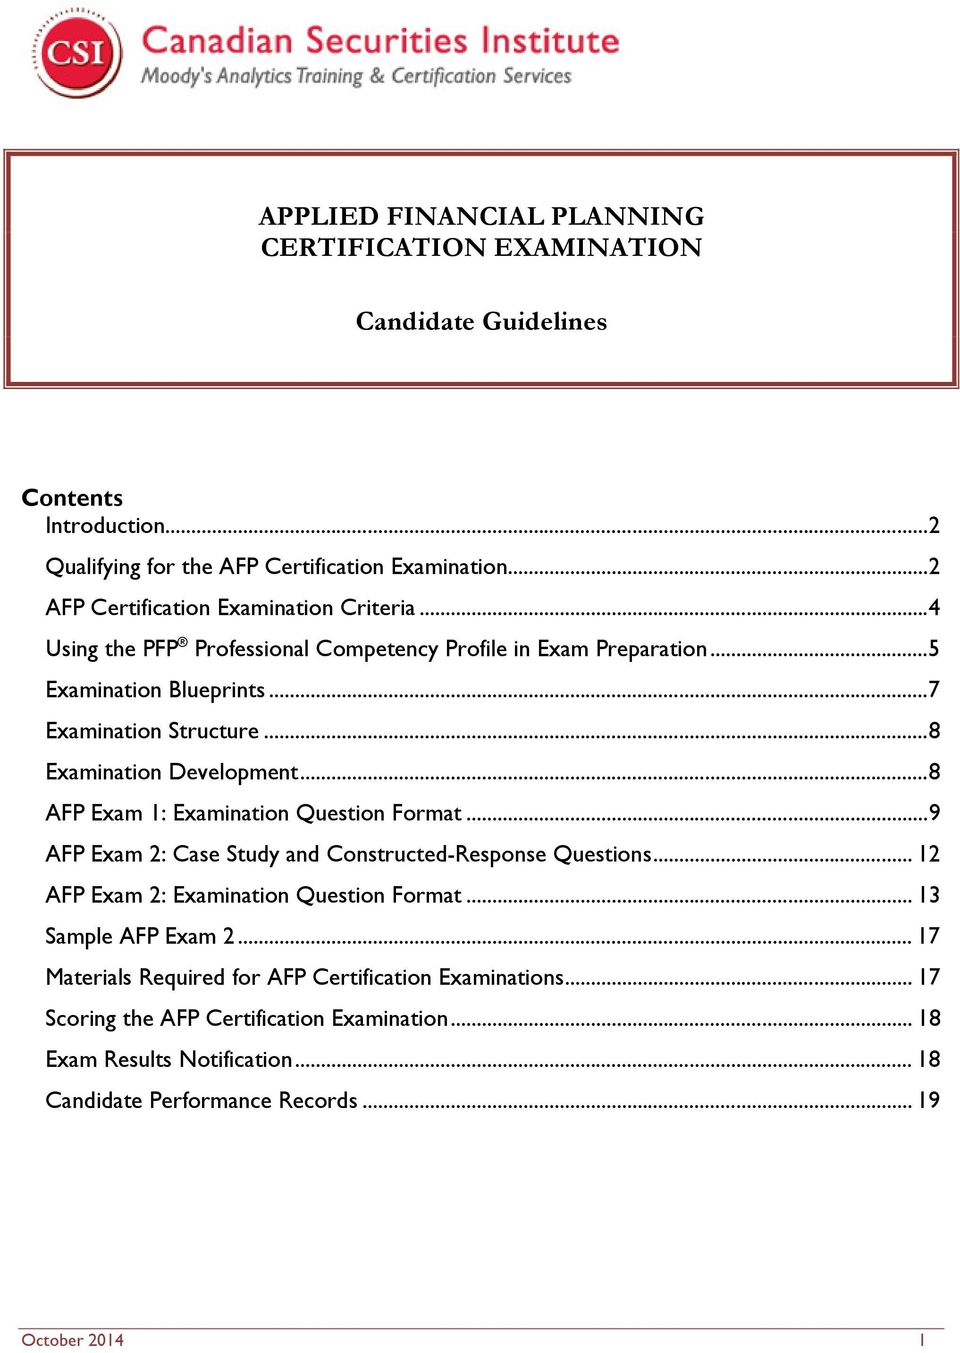 Applied Financial Planning Certification Examination Candidate